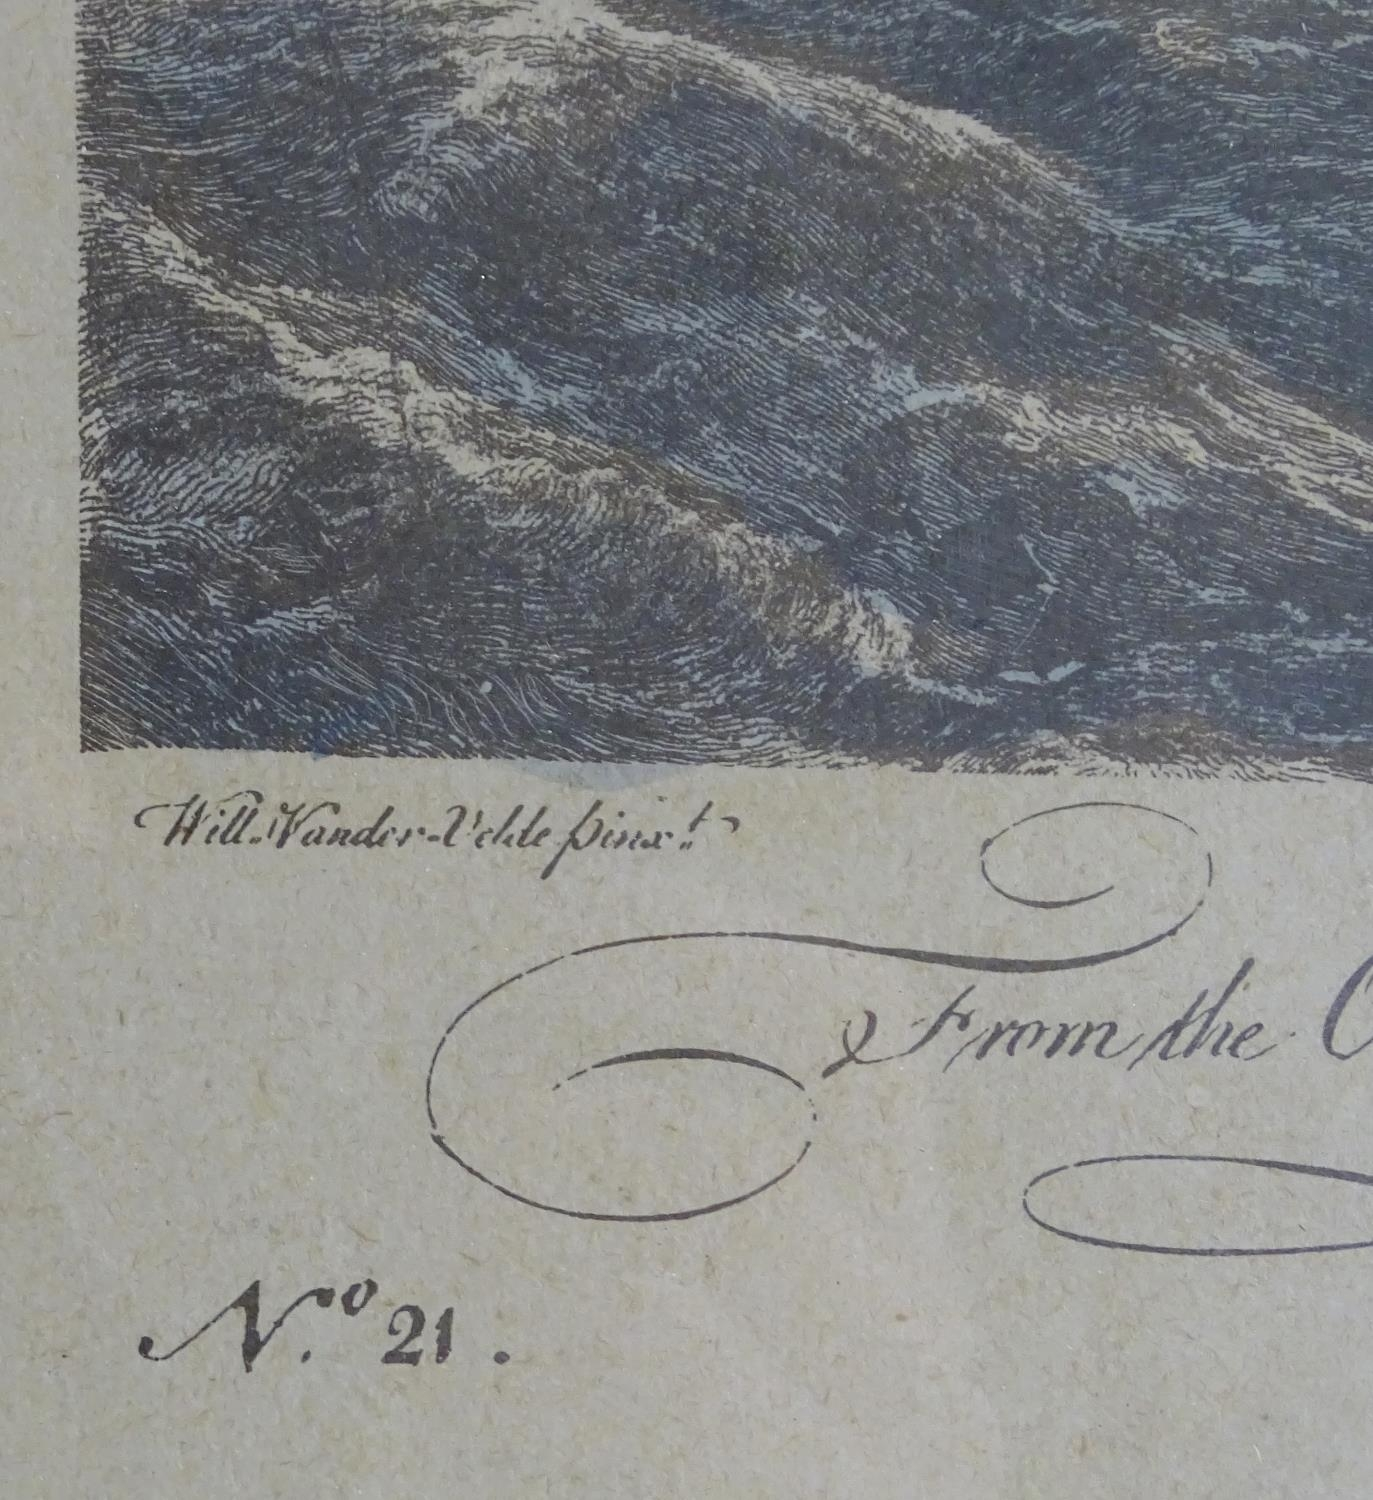 P. C. Canot, after Willem van de Velde, Two hand coloured engravings, A Brisk Gale, depicting a - Image 7 of 8